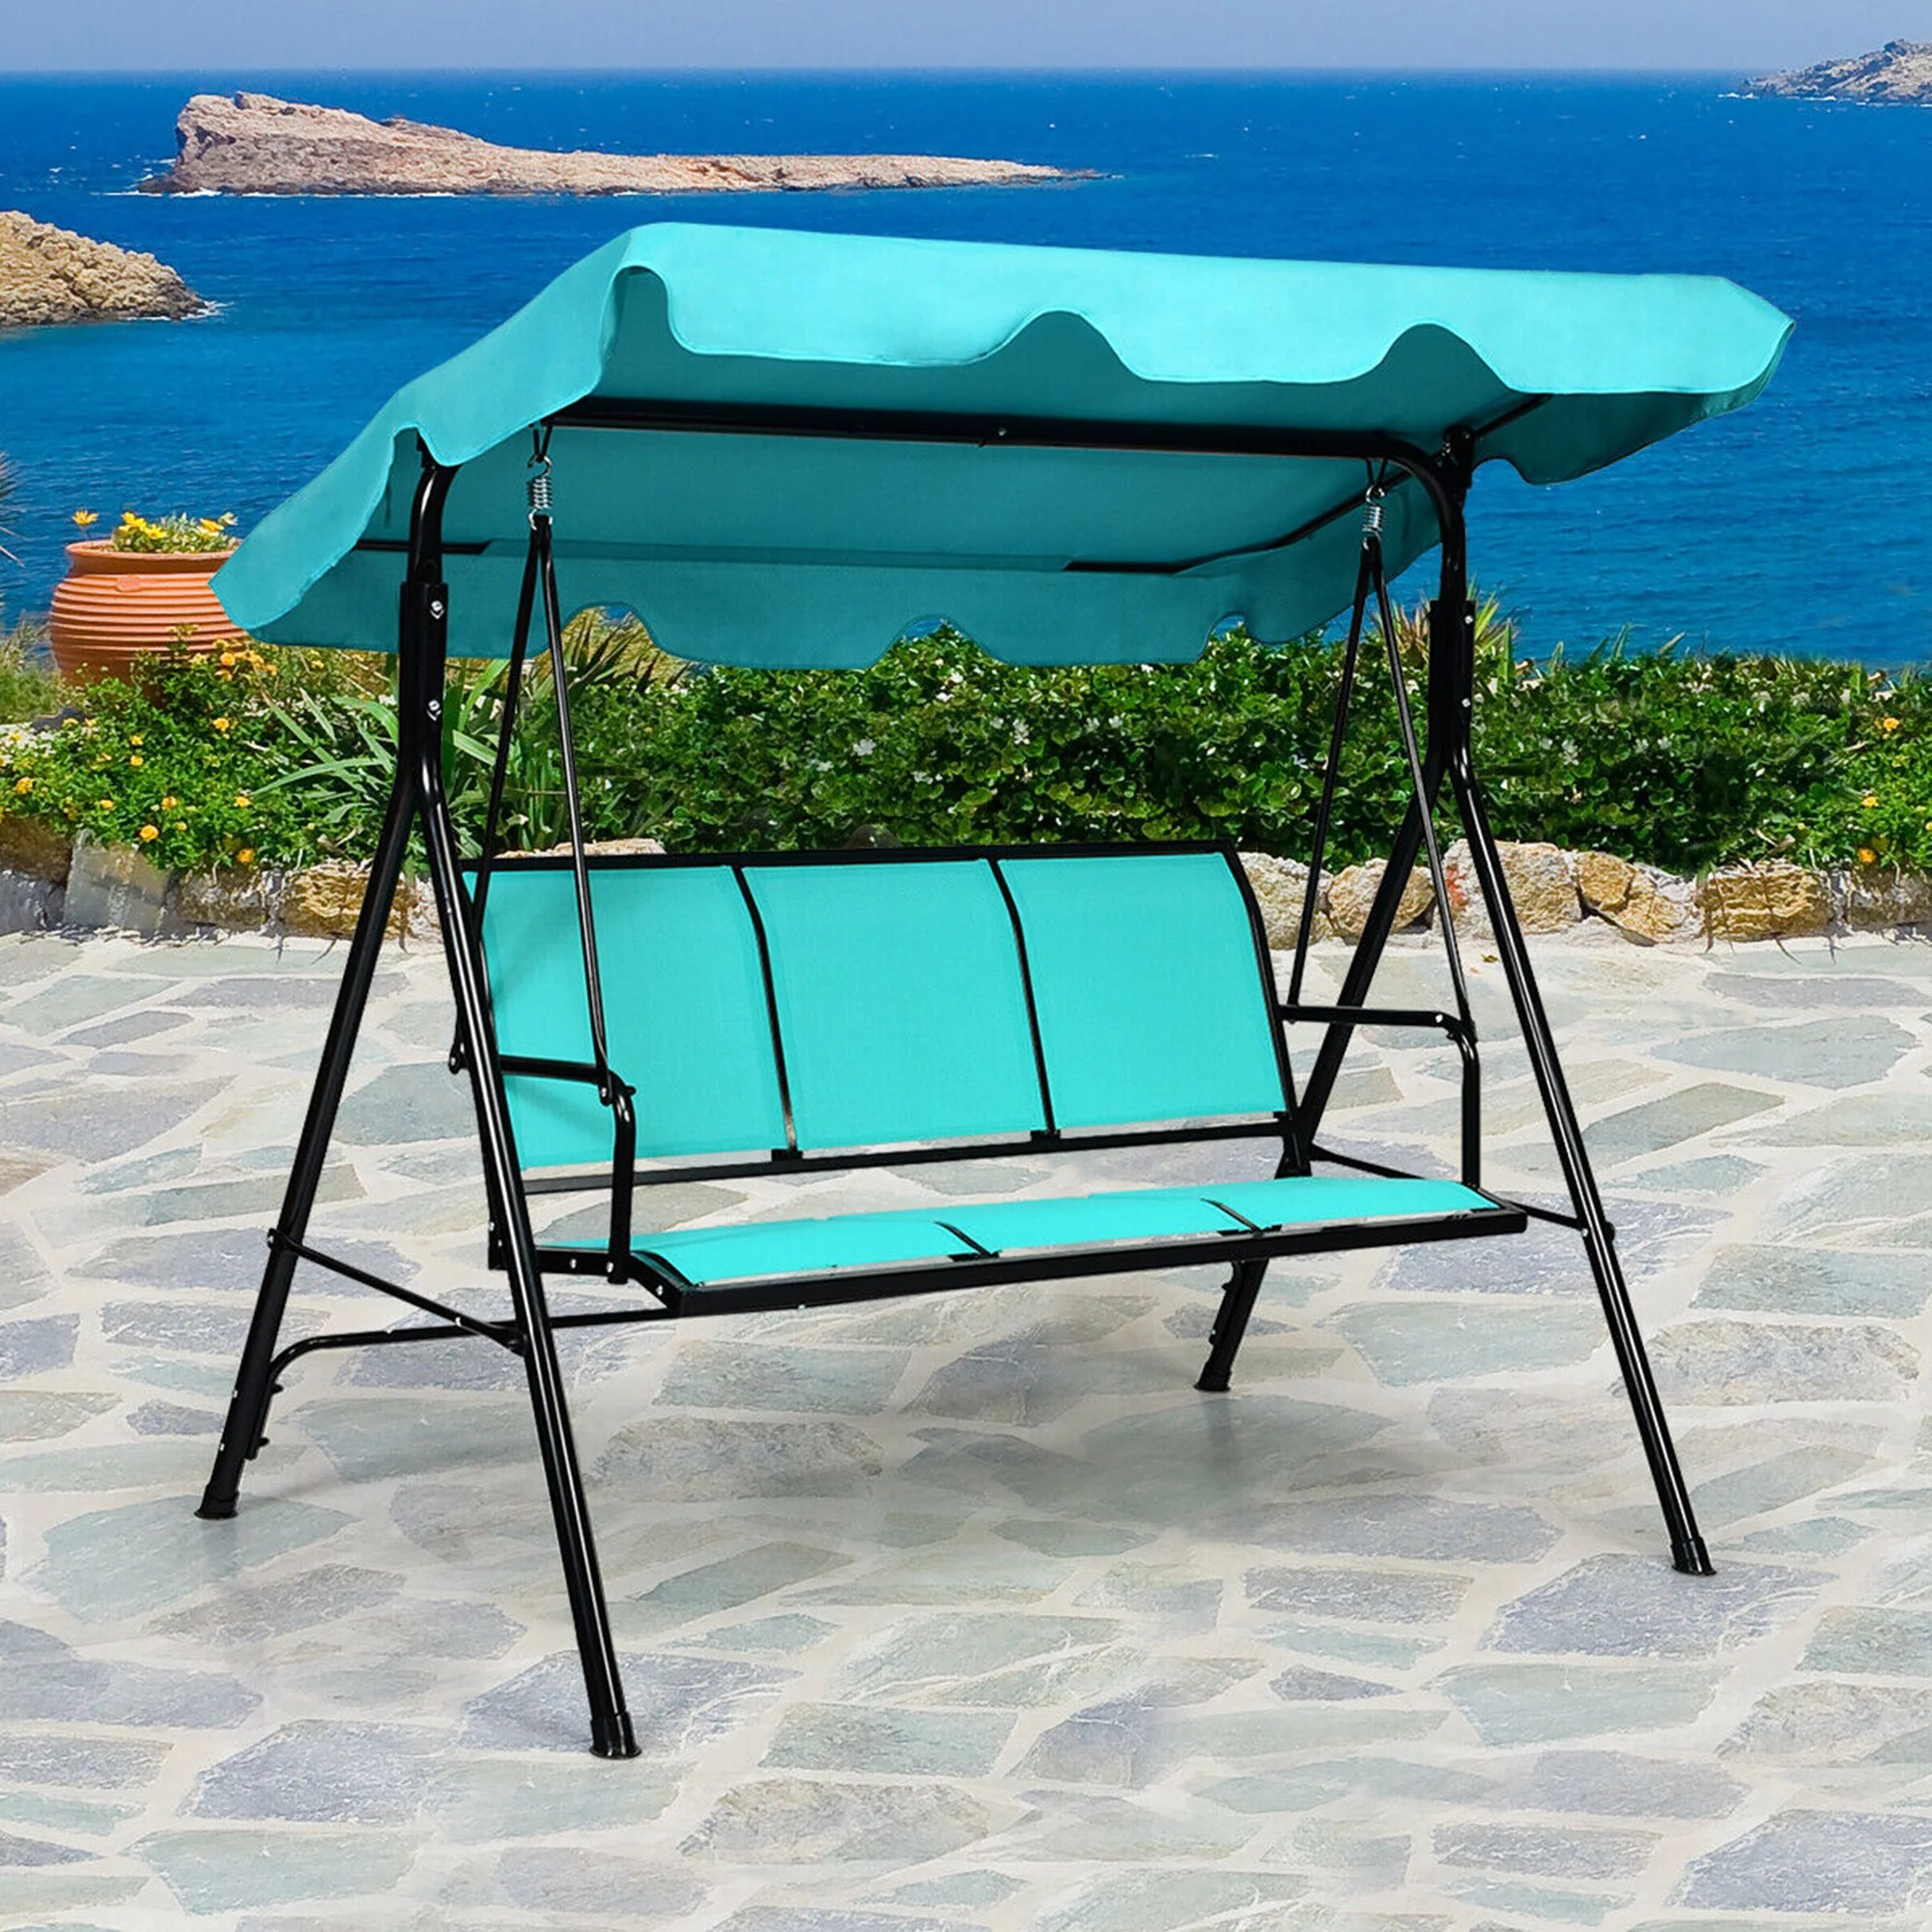 gymax outdoor swing canopy patio swing chair 3 person canopy hammock blue